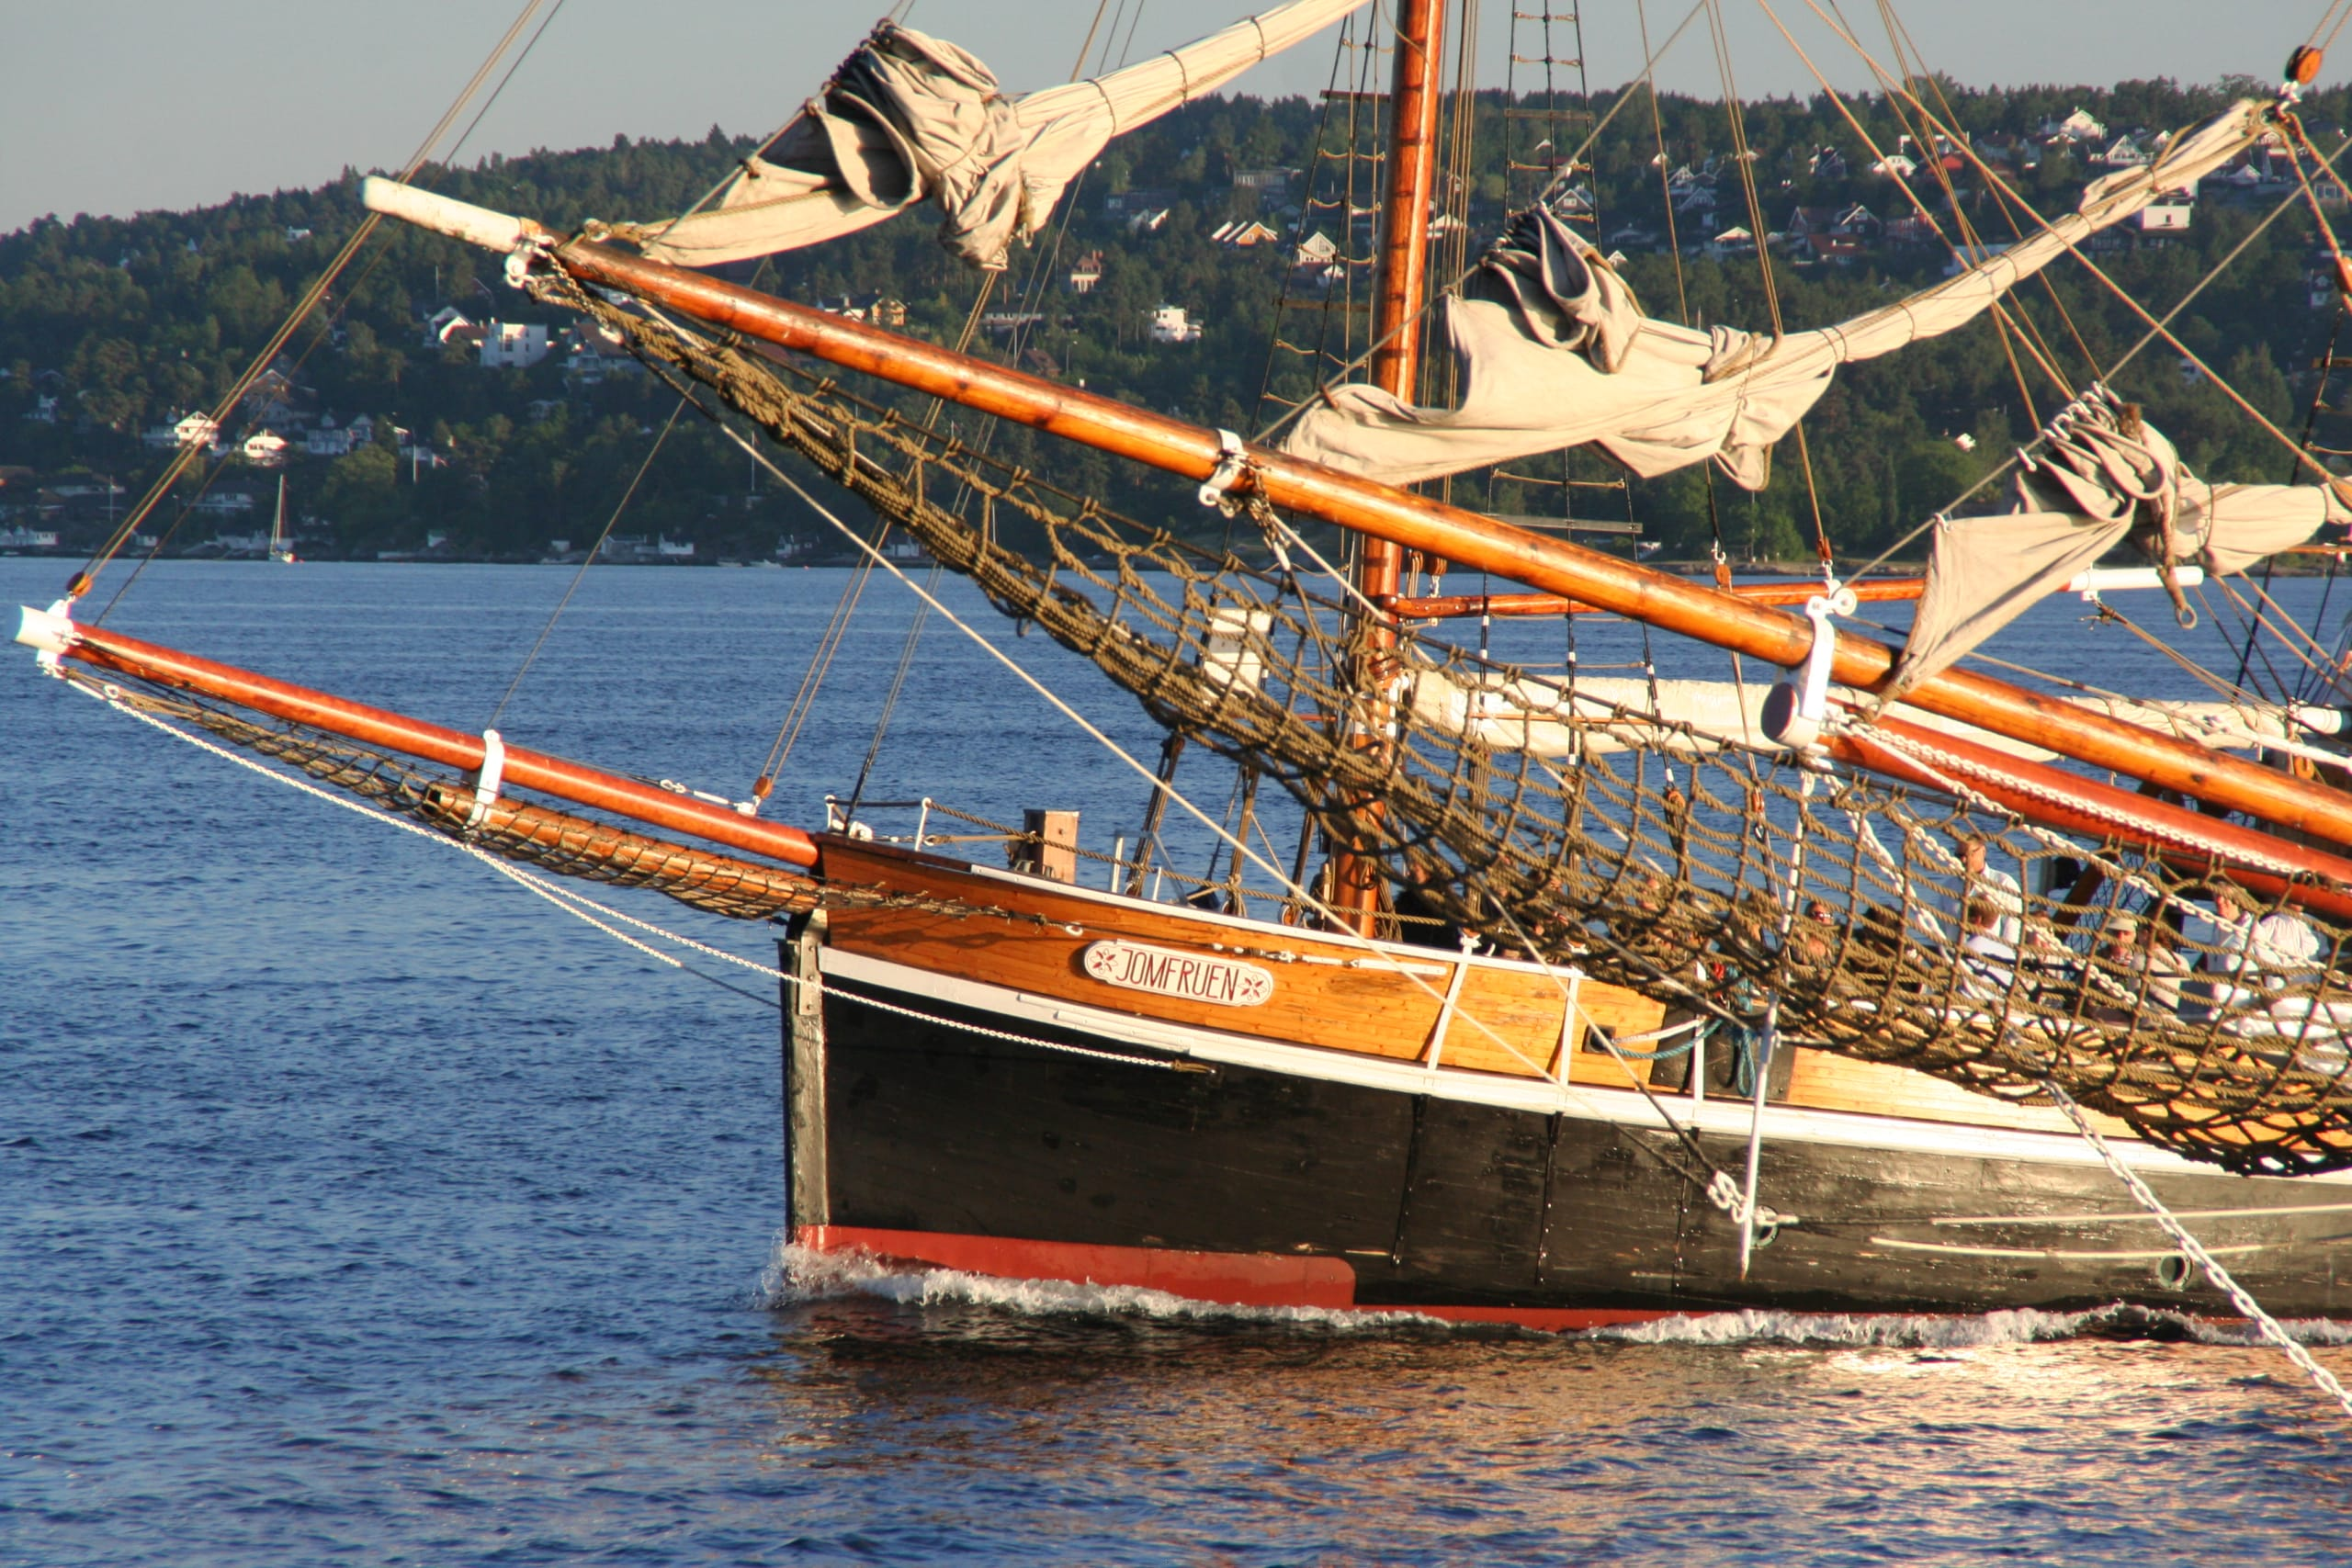 Cruise with sailship on the Oslofjord